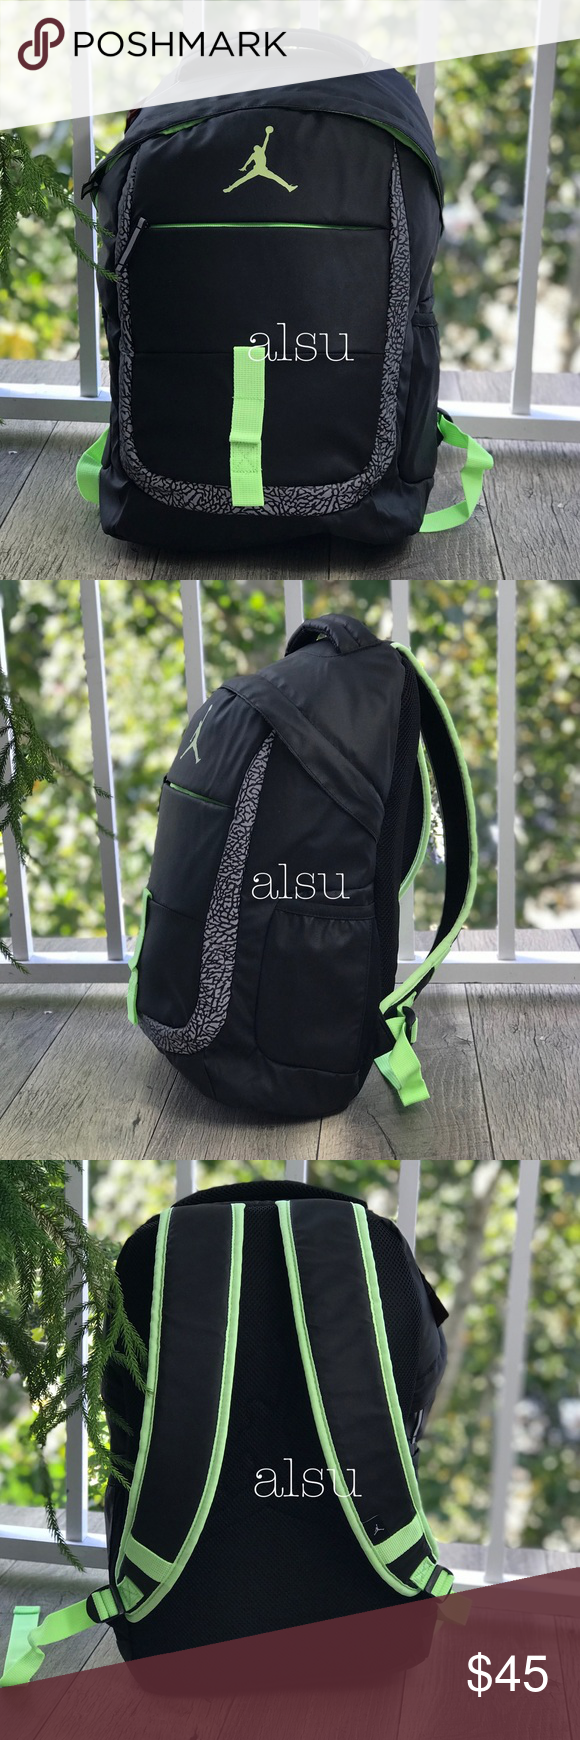 e1f23c0bb9 Nike Air Jordan Jumpman Jet Backpack Black-Green Brand new with tag. Price  is firm! No trades. Nike Bags Backpacks